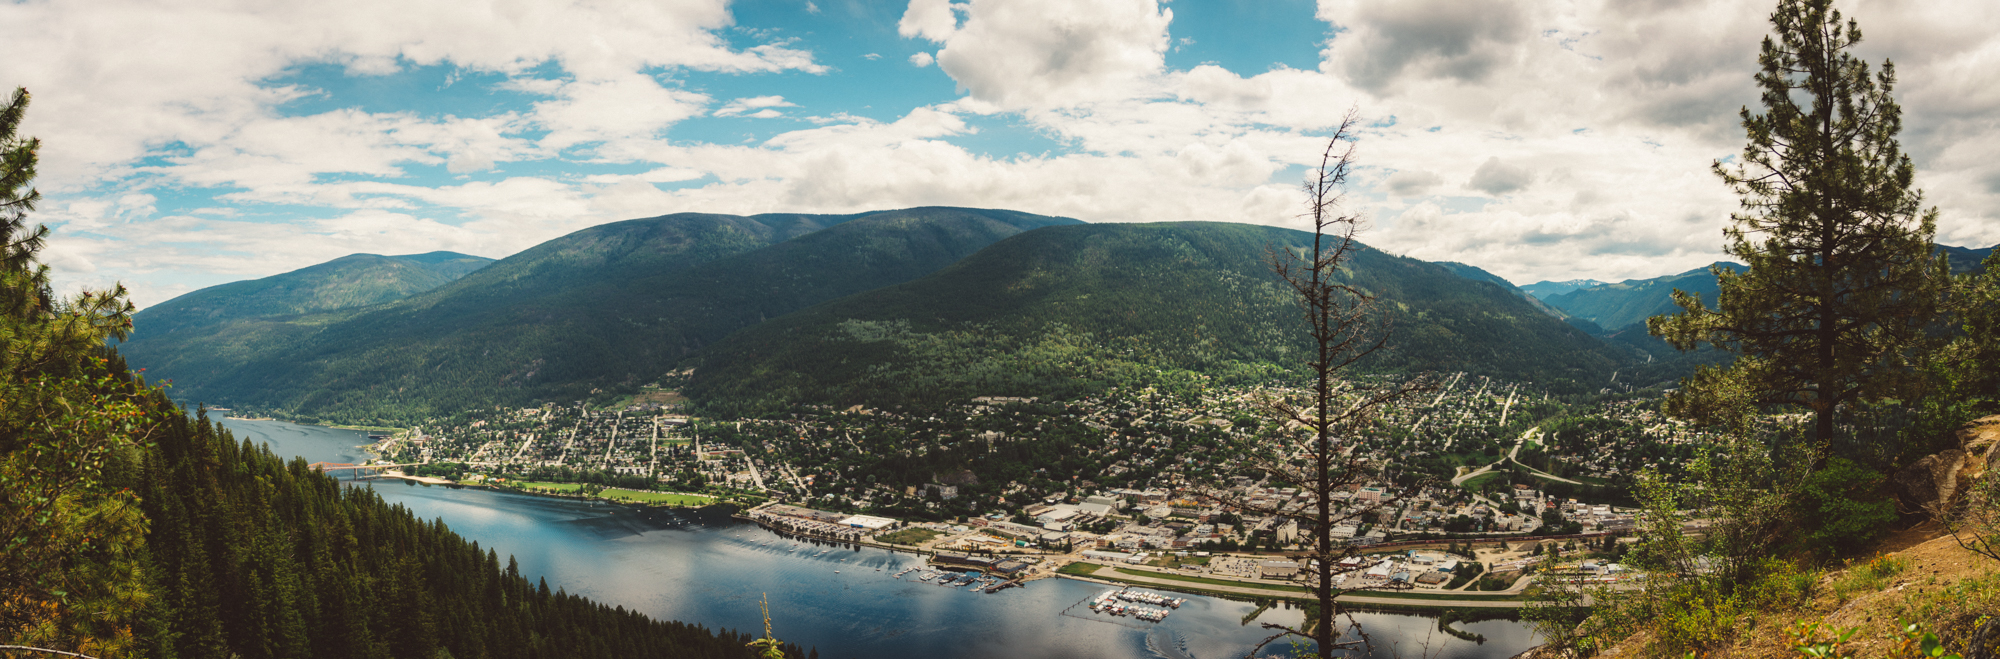 The view from Pulpit Rock.